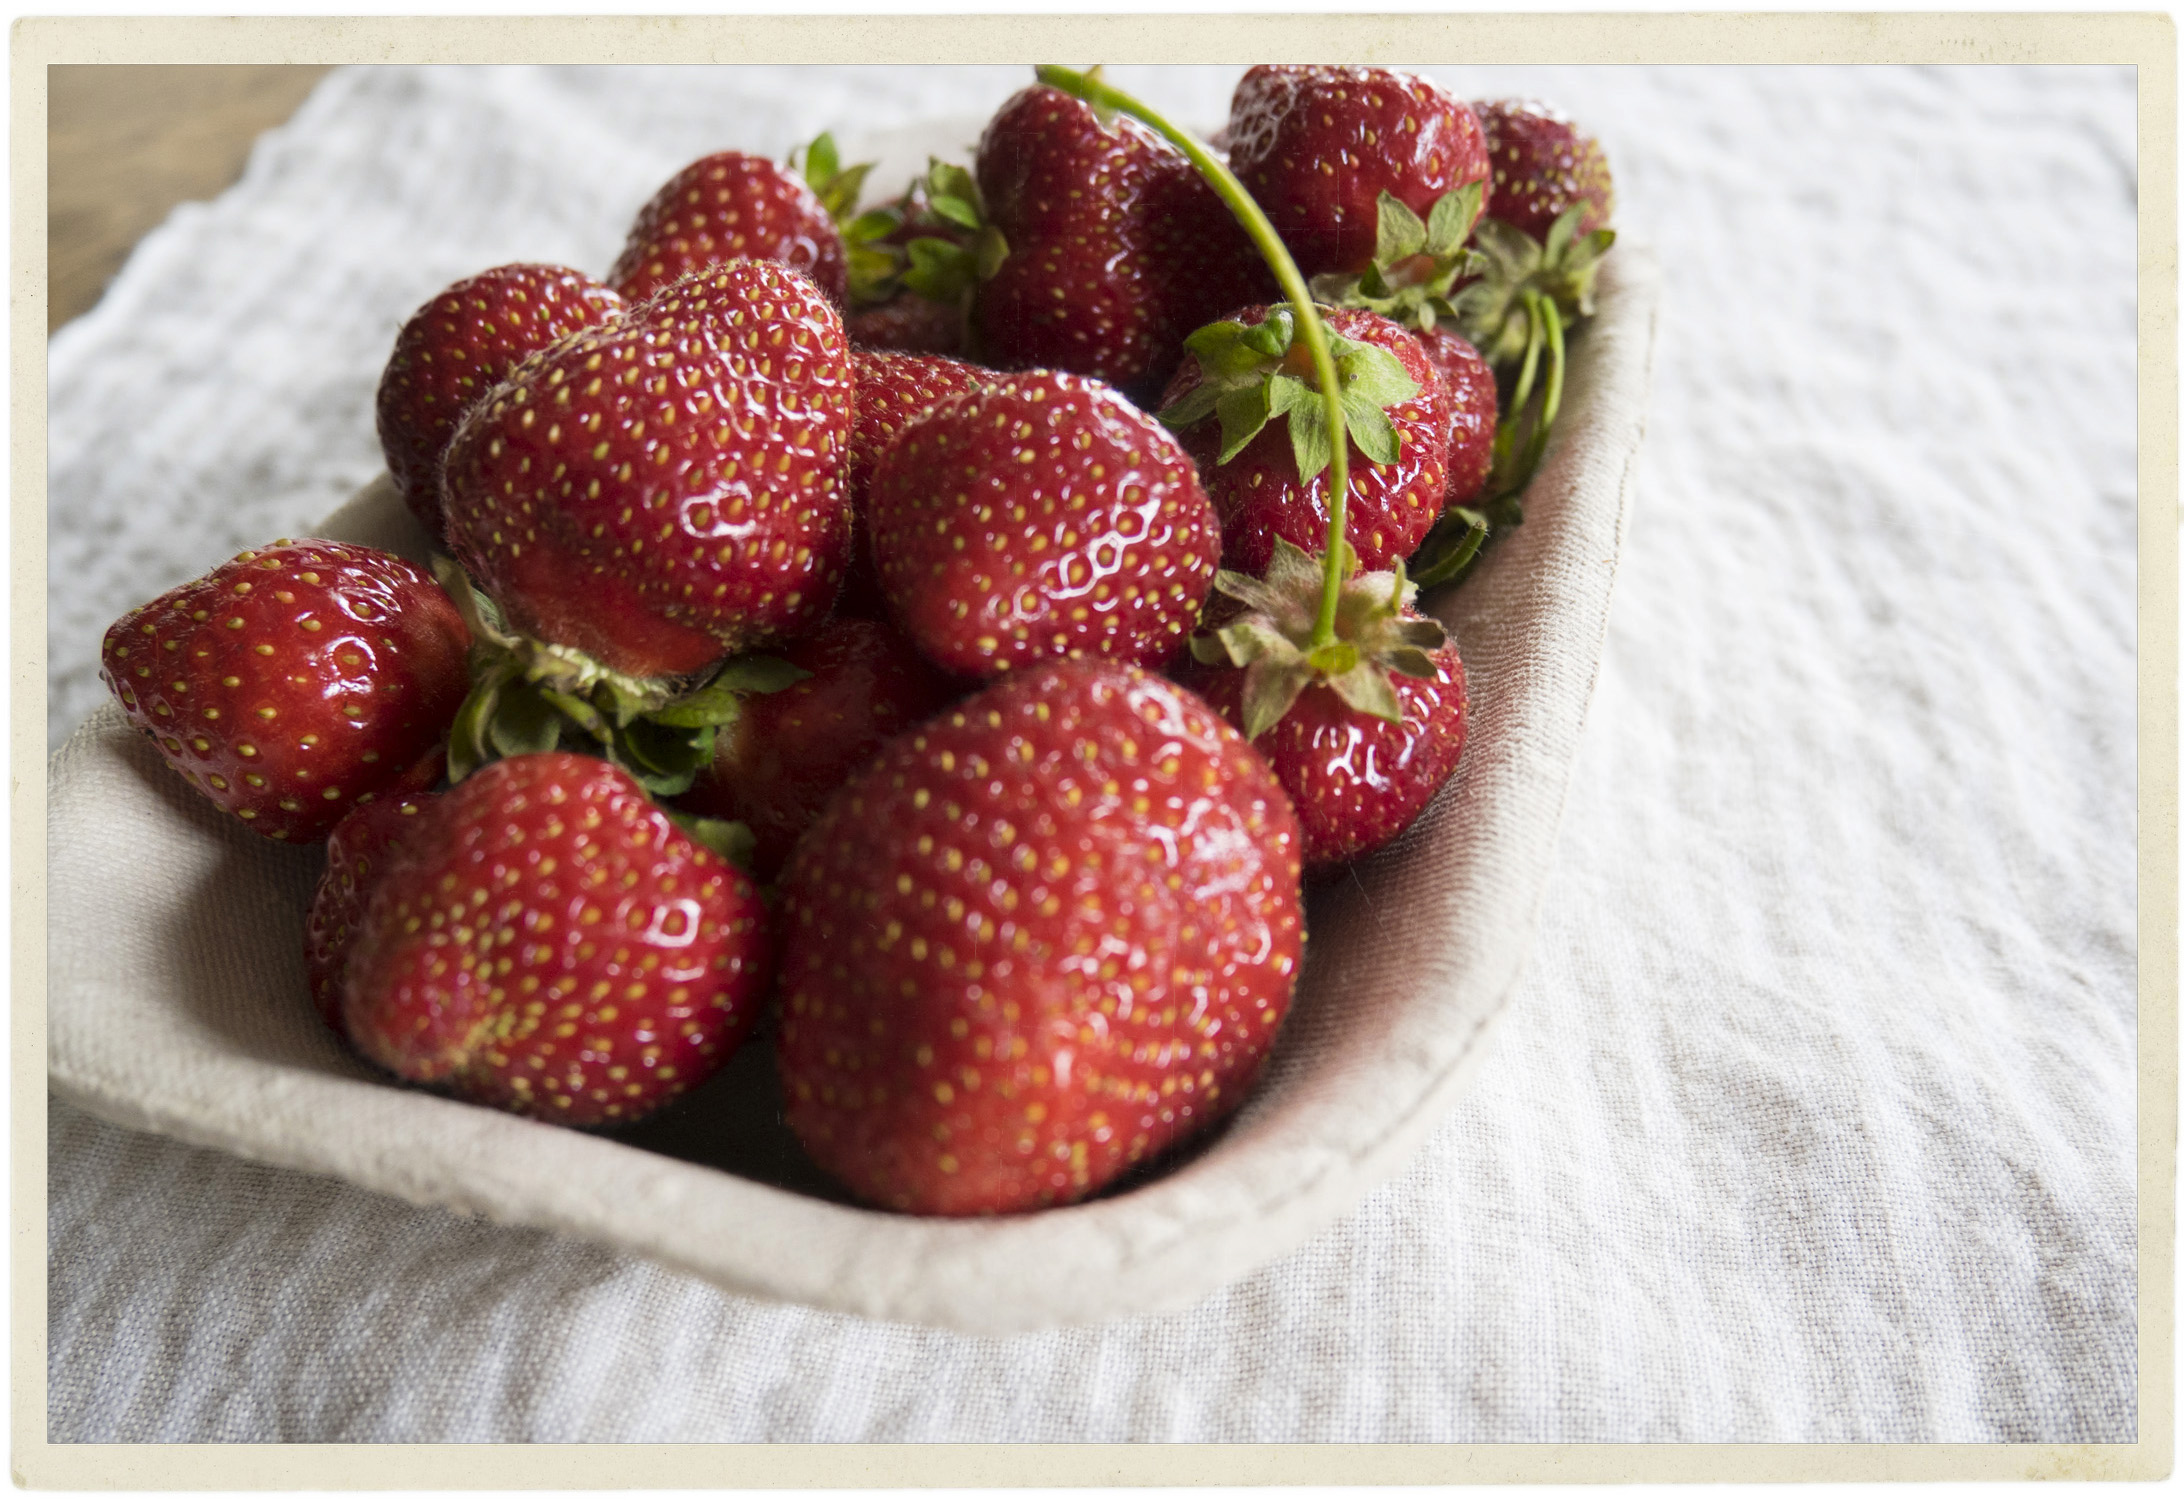 """Strawberries seem to say """"hello Summer, welcome back!"""""""